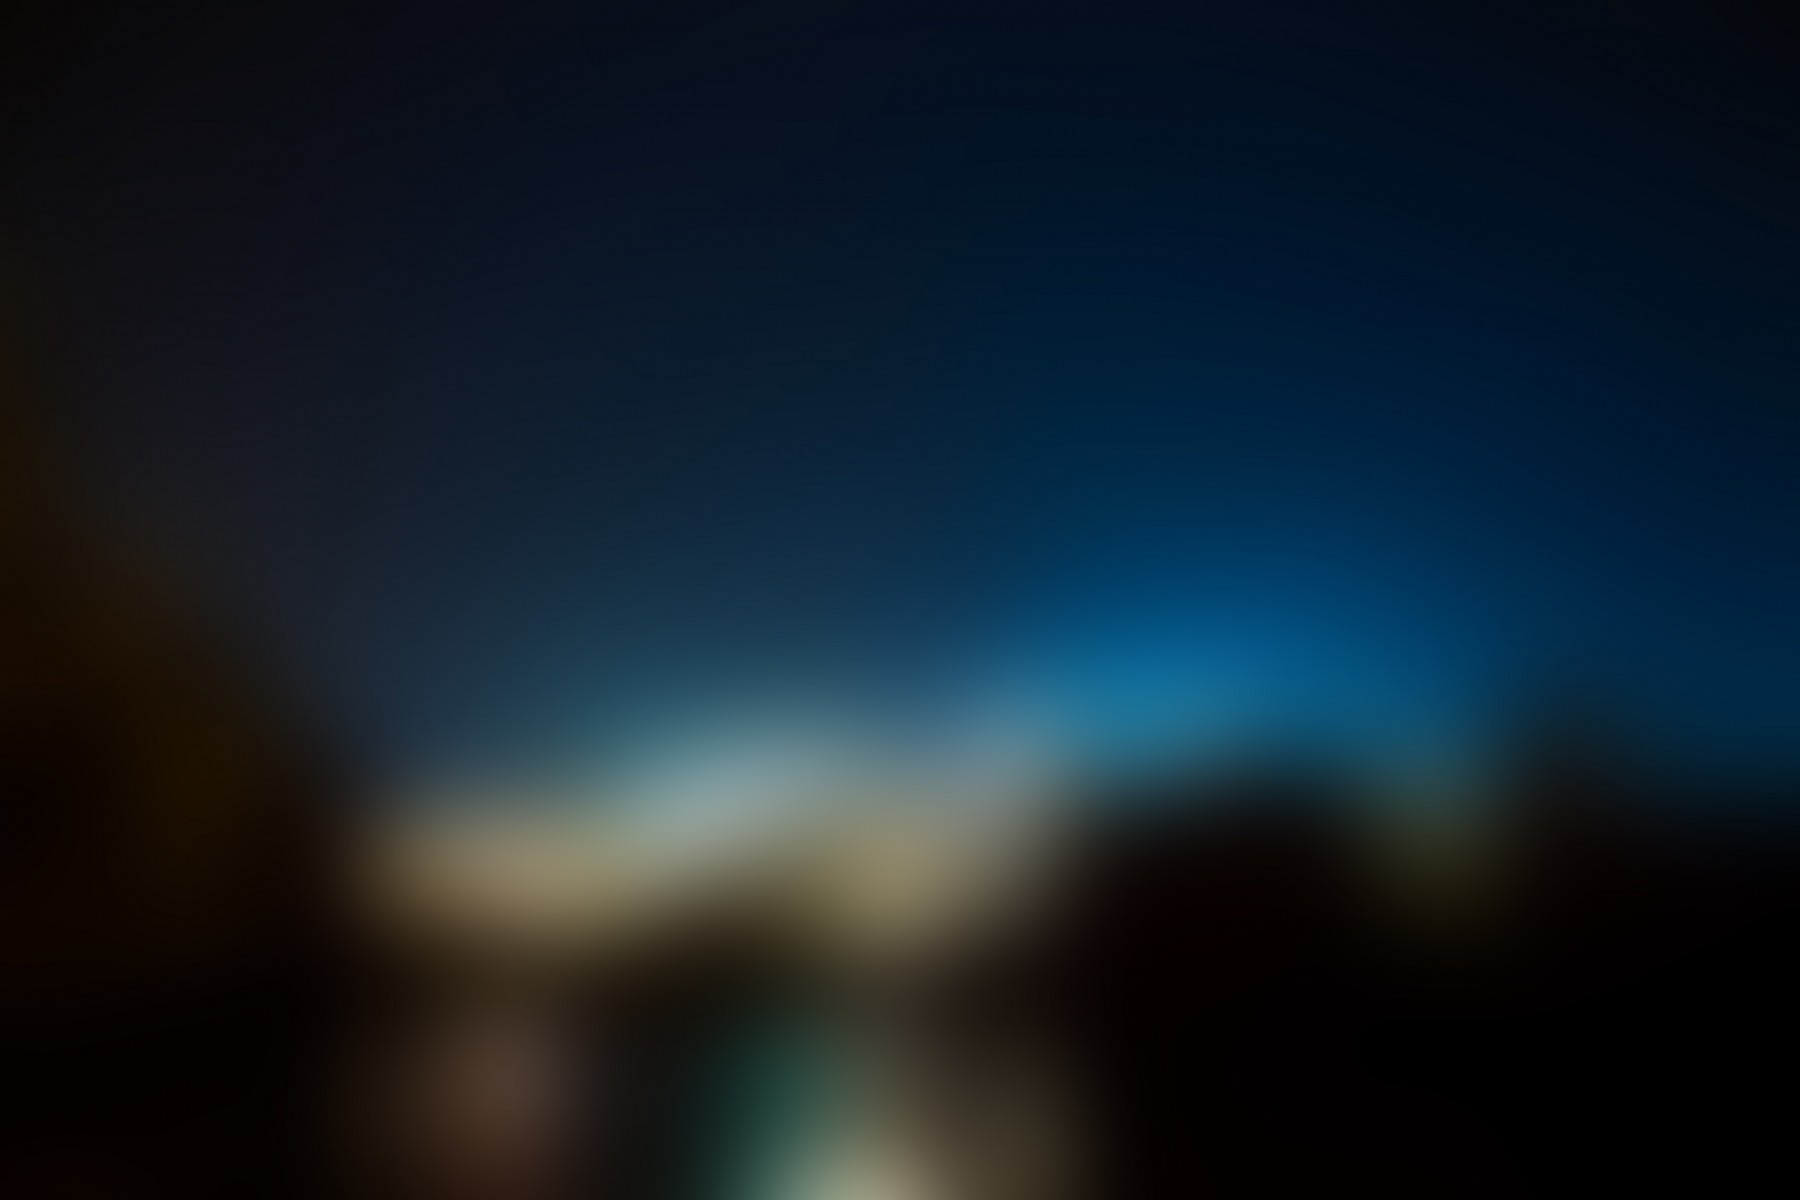 Blur Backgrounds Archives - SplitShire - Free Stock Photos & Images ...